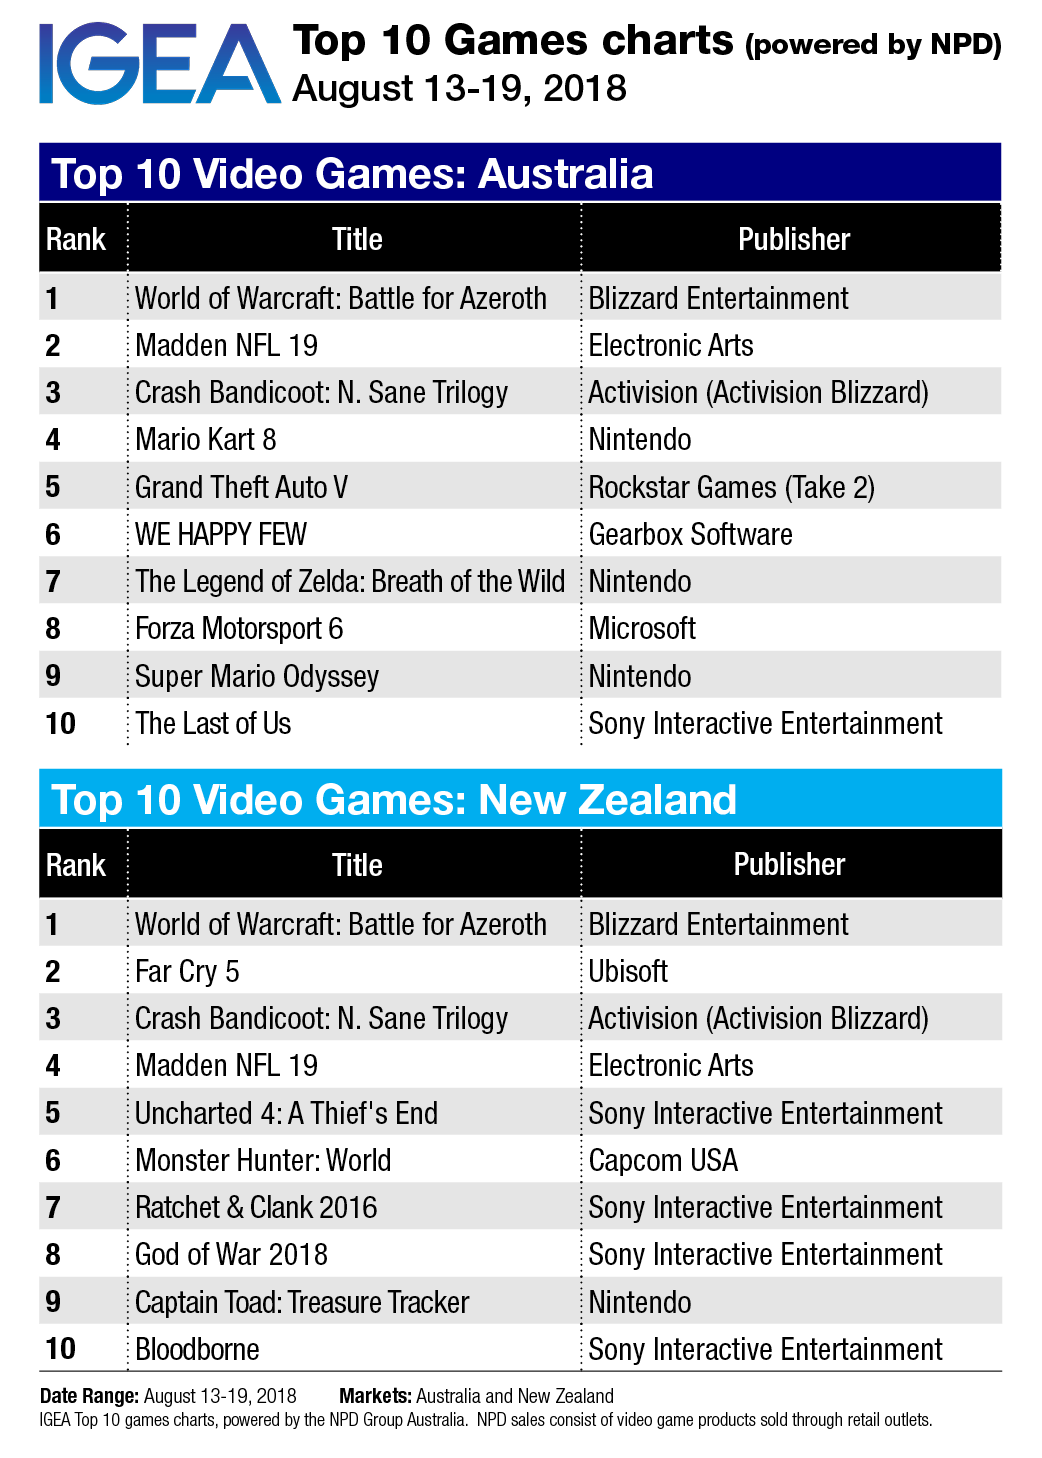 top 10 game charts world of warcraft battle of azeroth debuts at 1